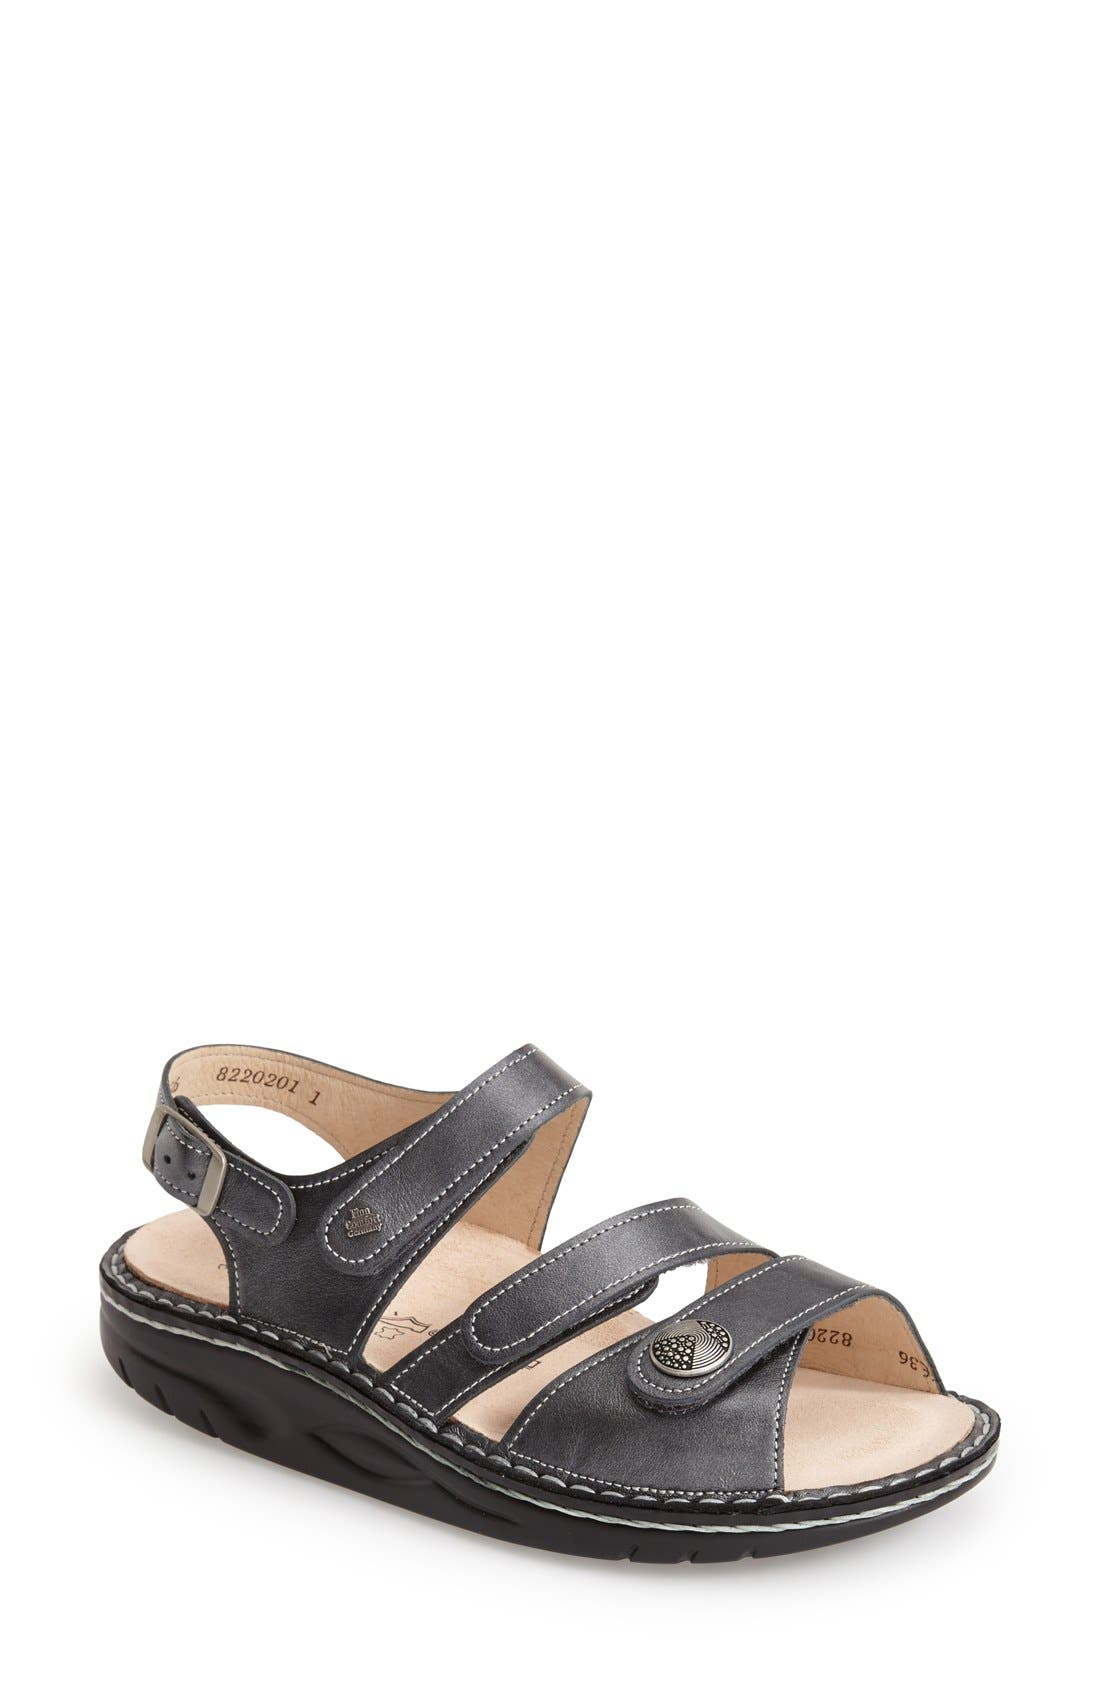 Main Image - Finn Comfort 'Tiberias' Leather Sandal (Women)